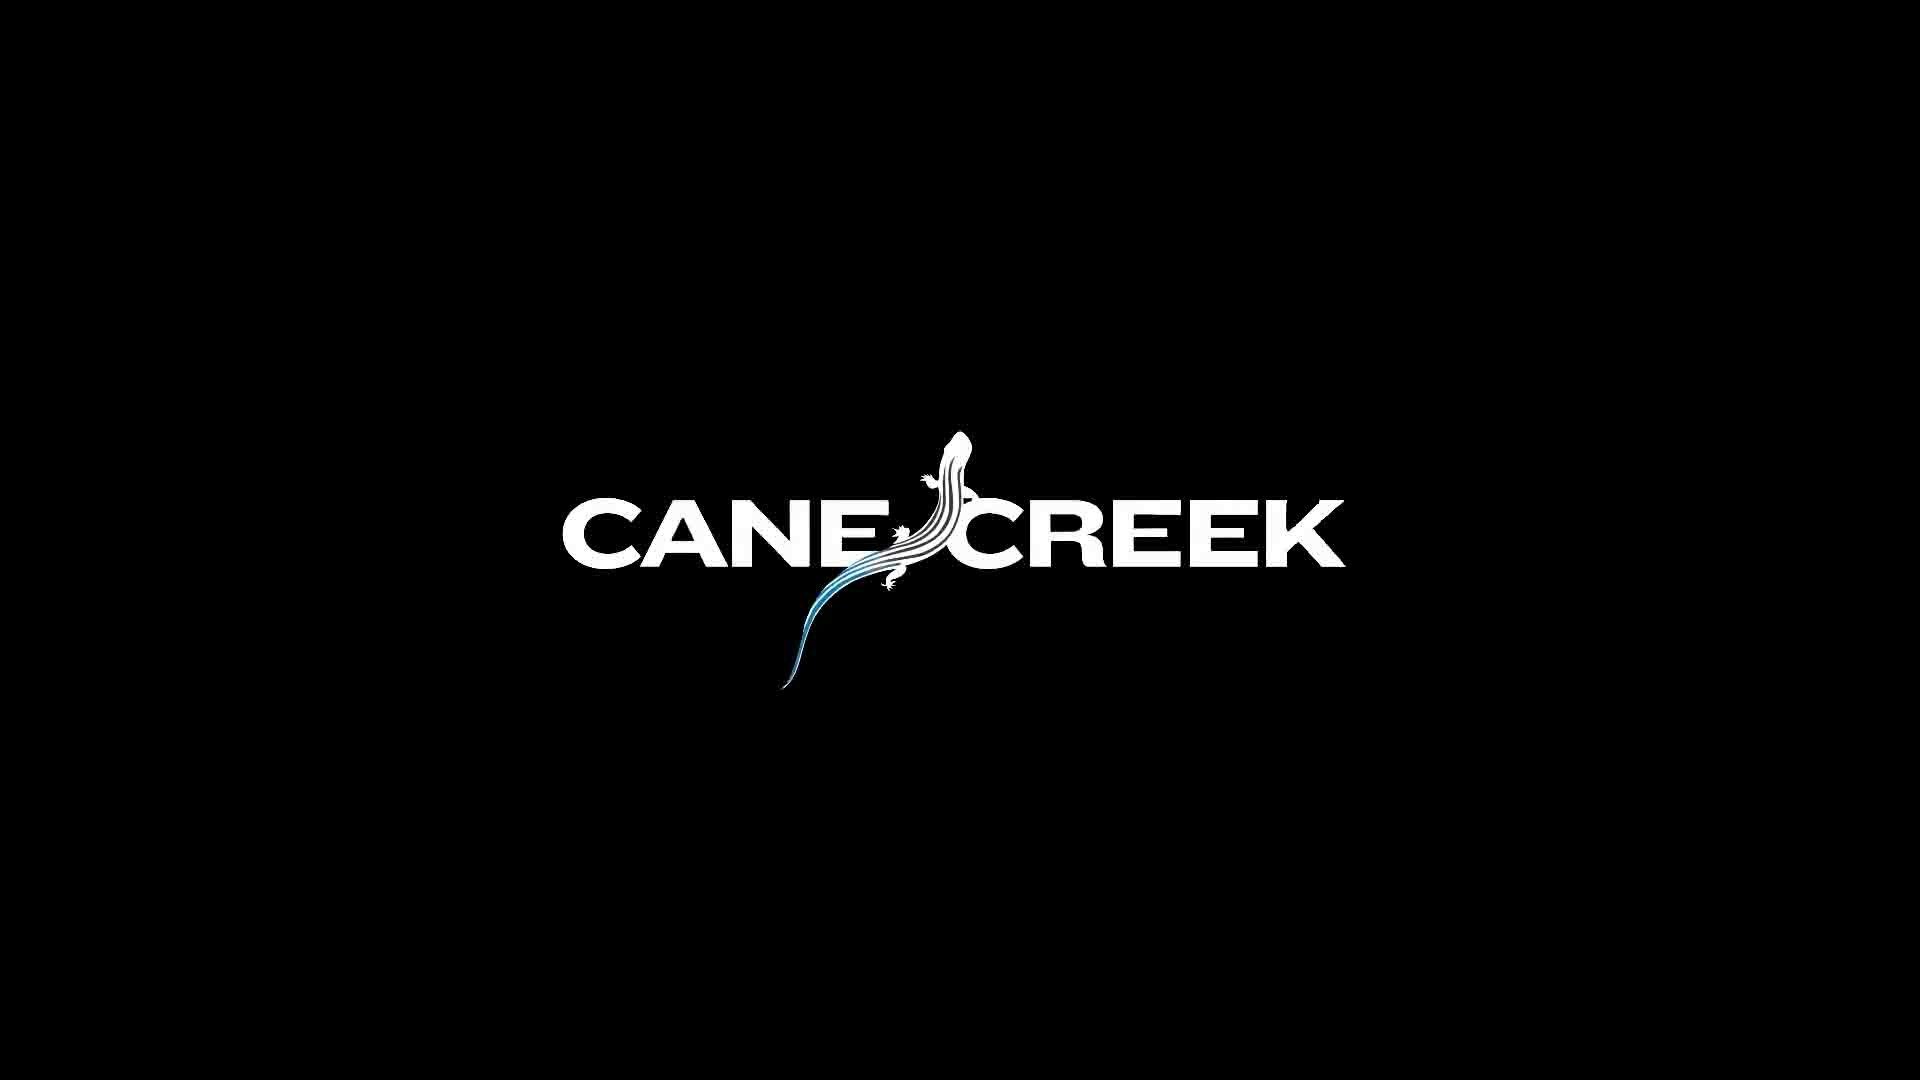 Cane Creek - The All New eeSilk Carbon and eeSilk Seatpost